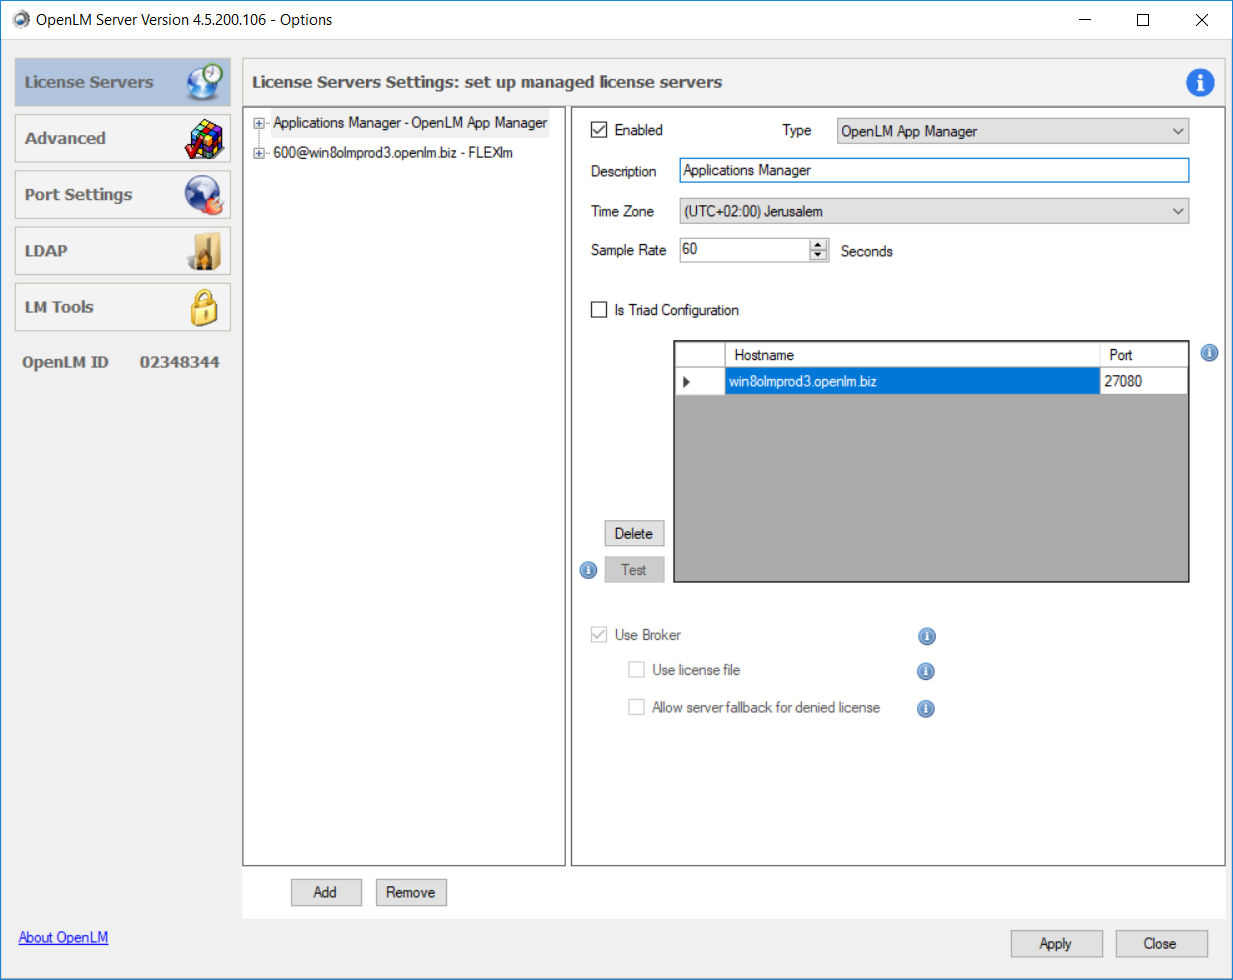 An Applications Manager configured with the OpenLM Server Configuration Tool